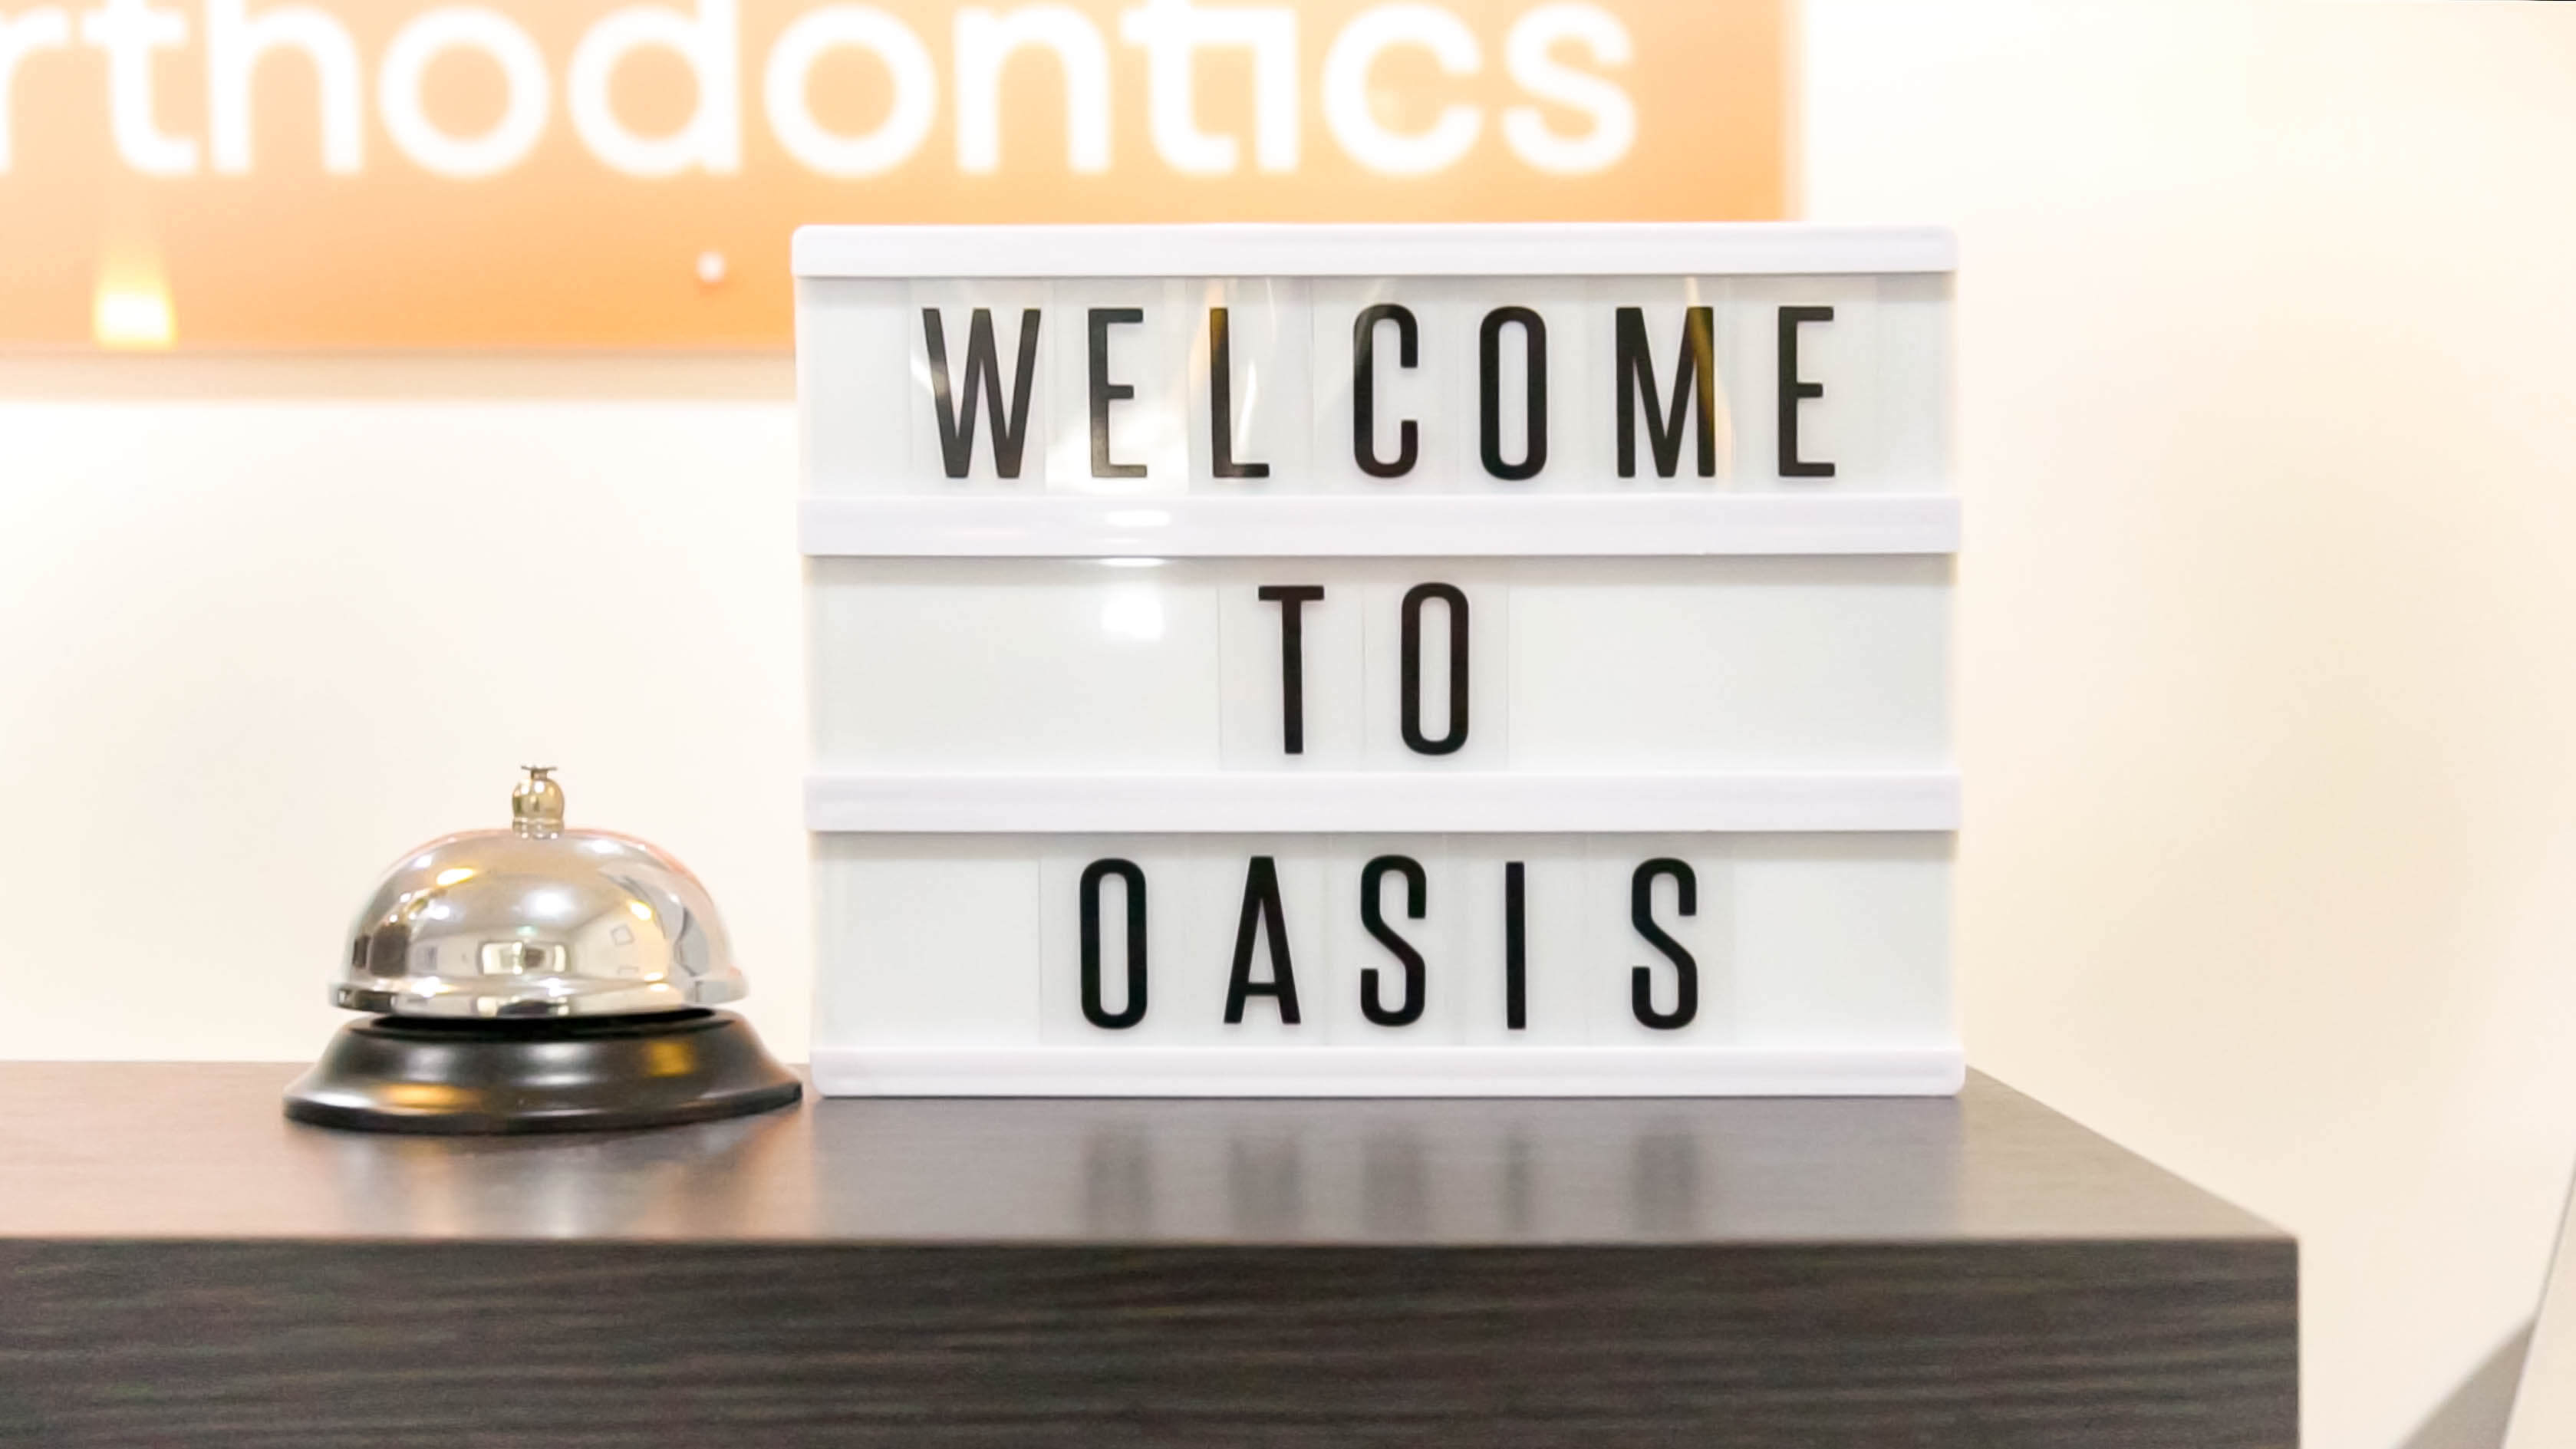 Welcome to oasis